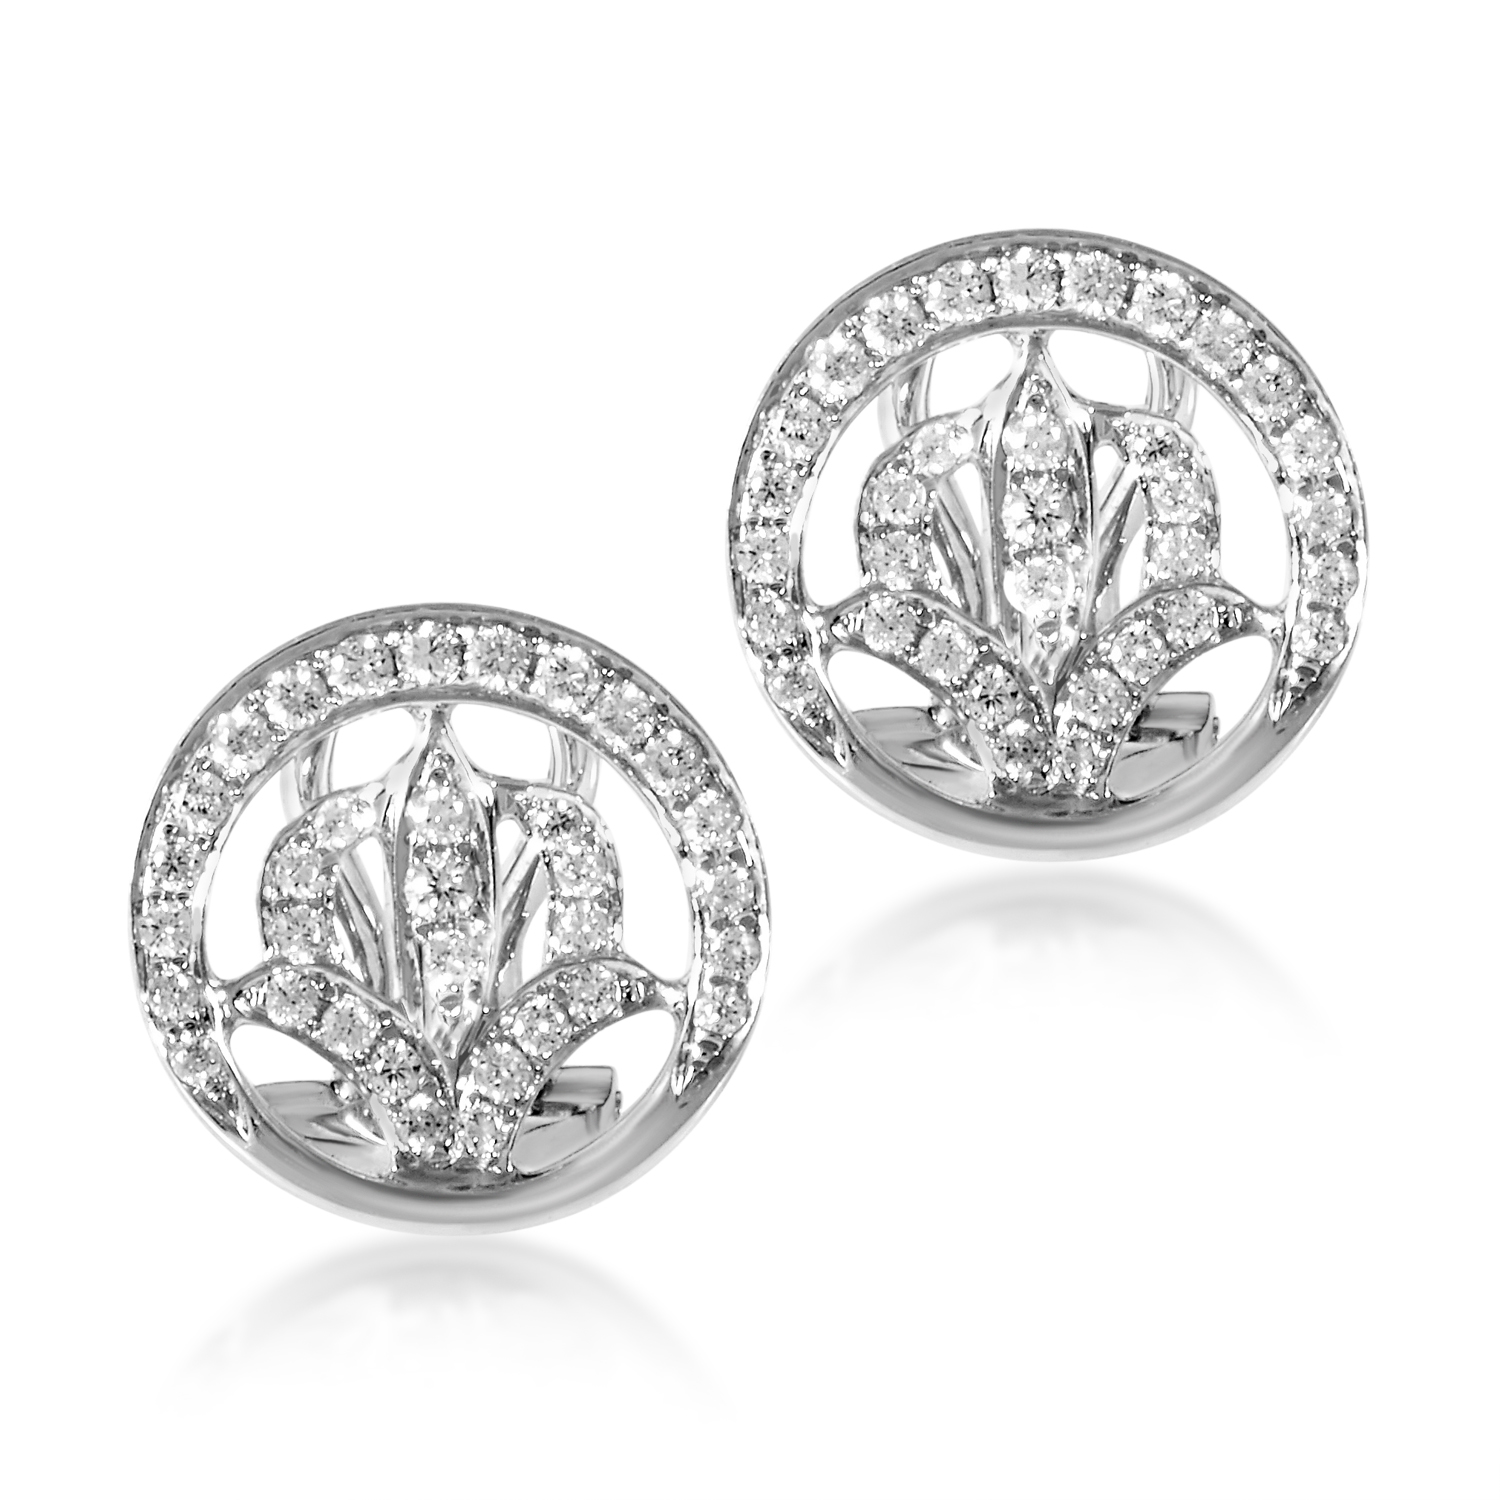 18K White Gold Filigree Diamond Earrings SEA98411RBZ